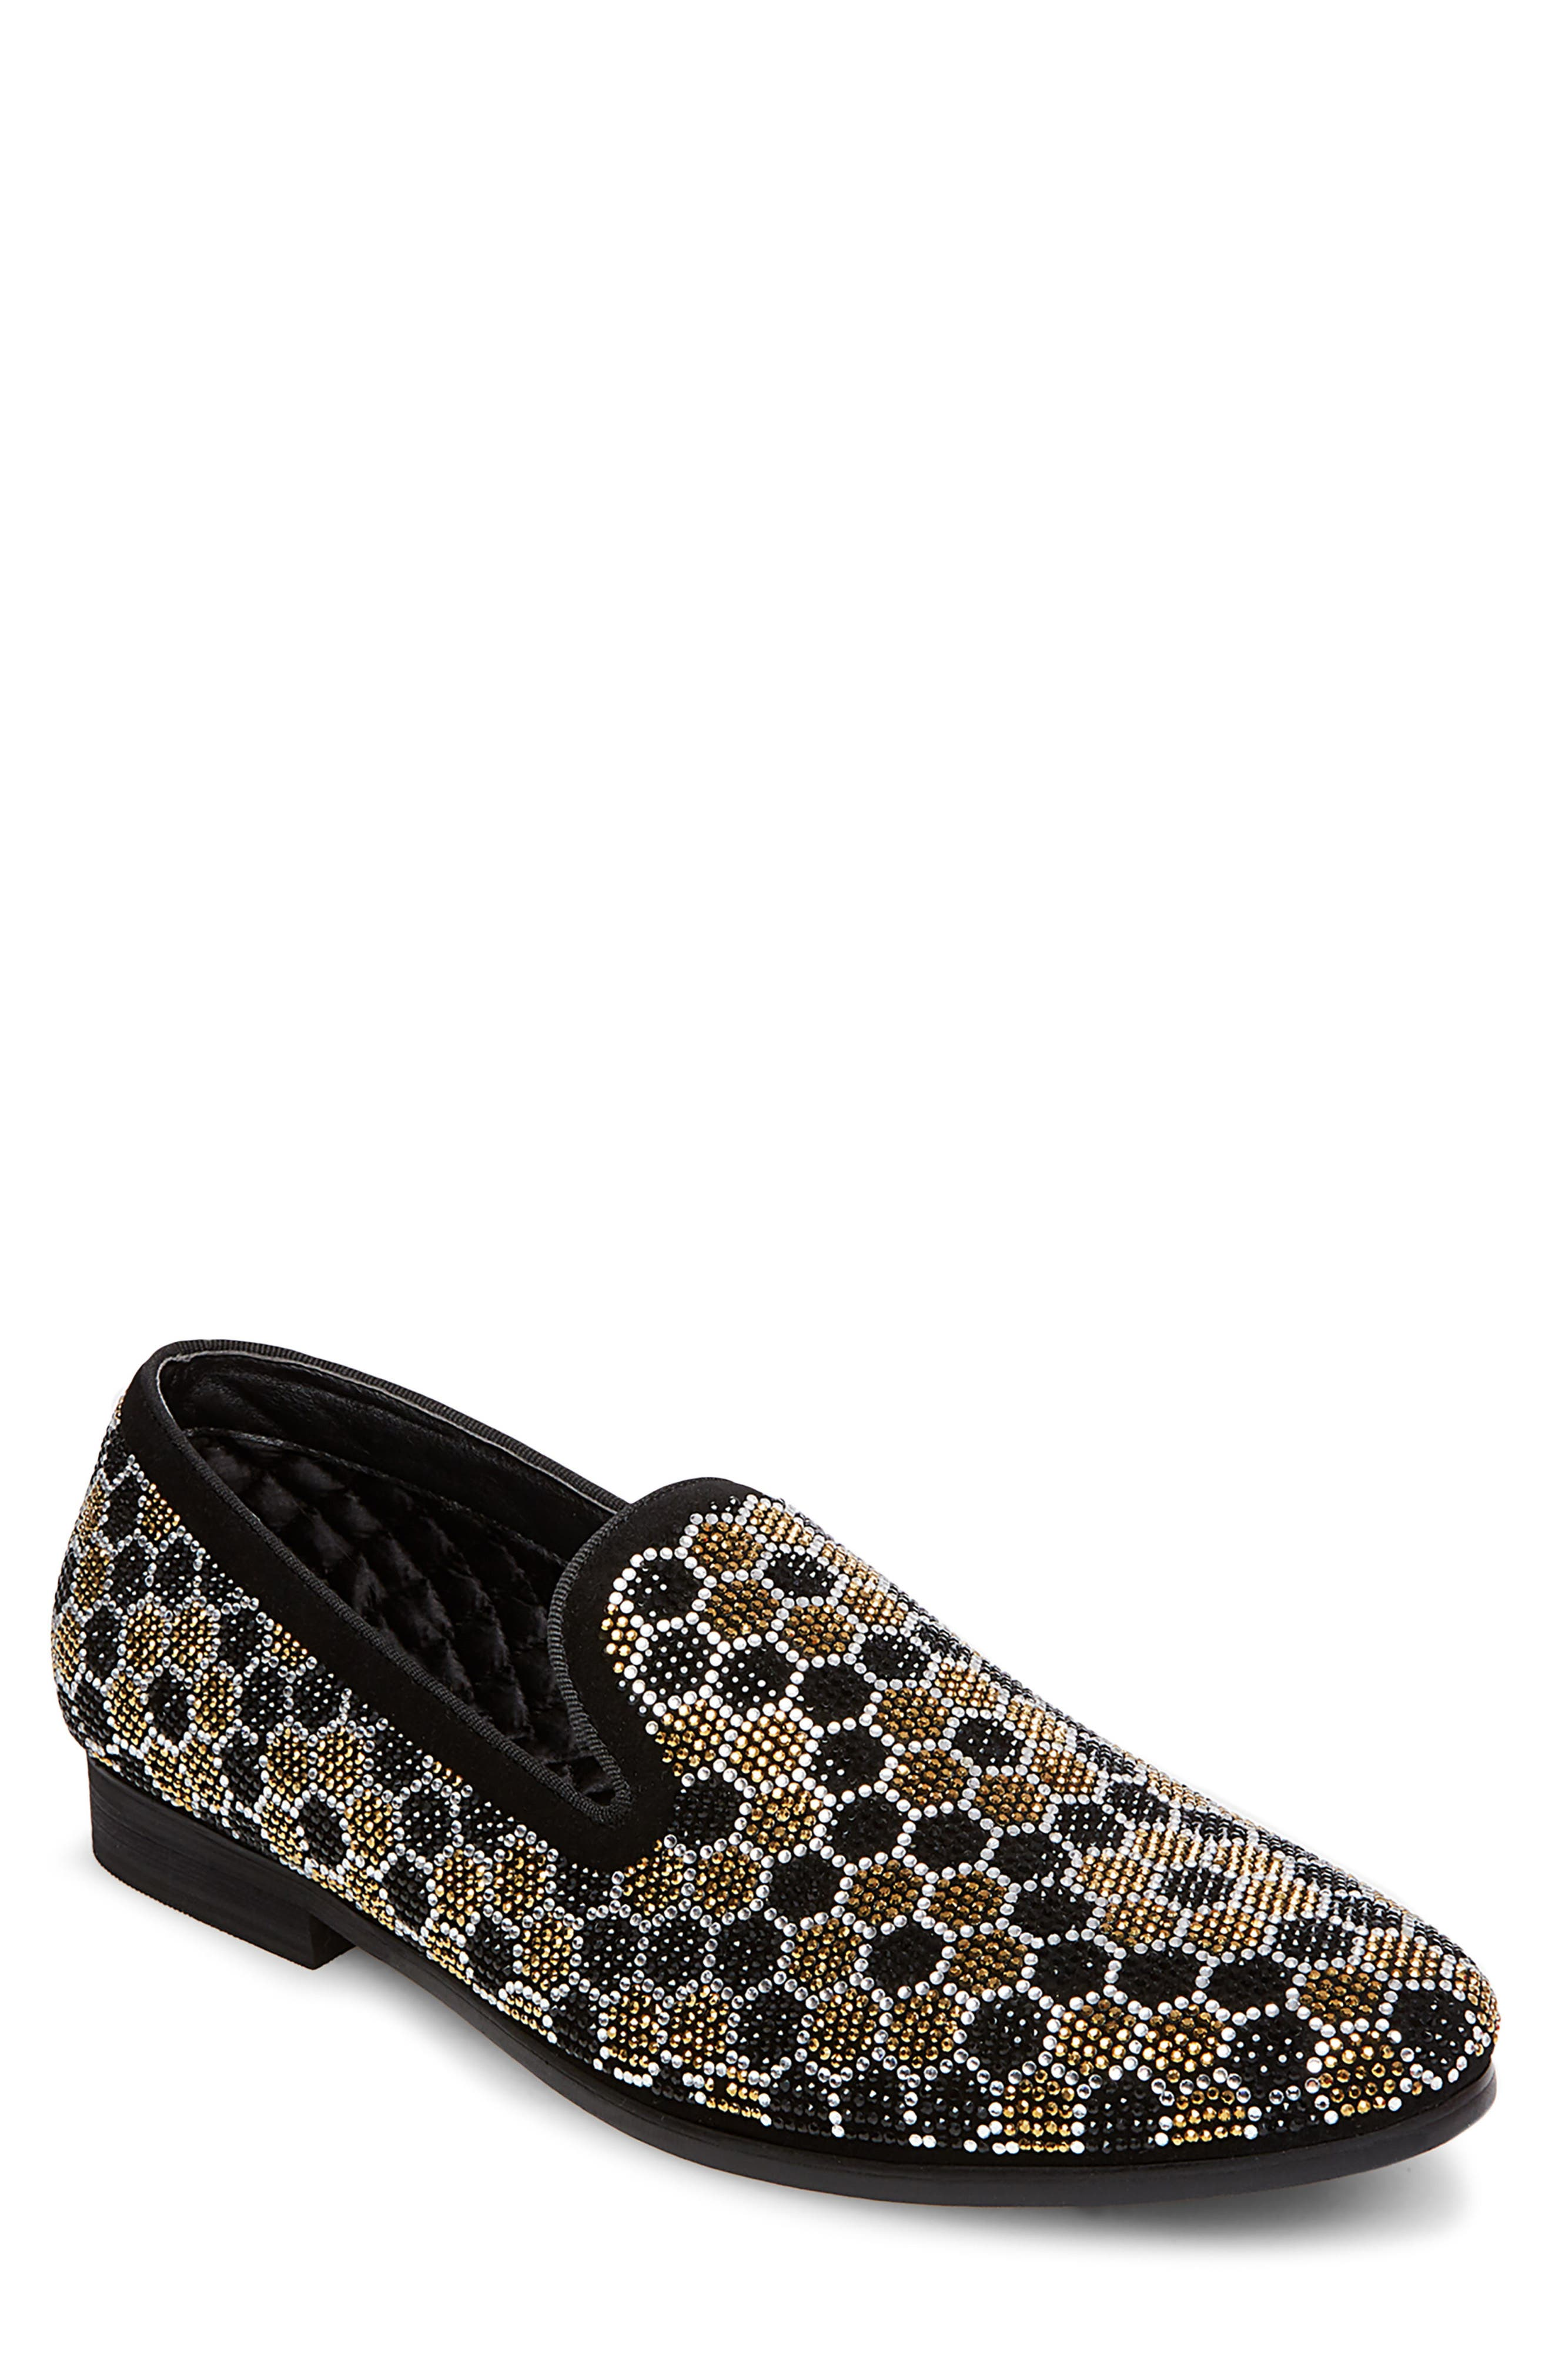 Caspian Studded Venetian Loafer,                         Main,                         color, Black/ Gold